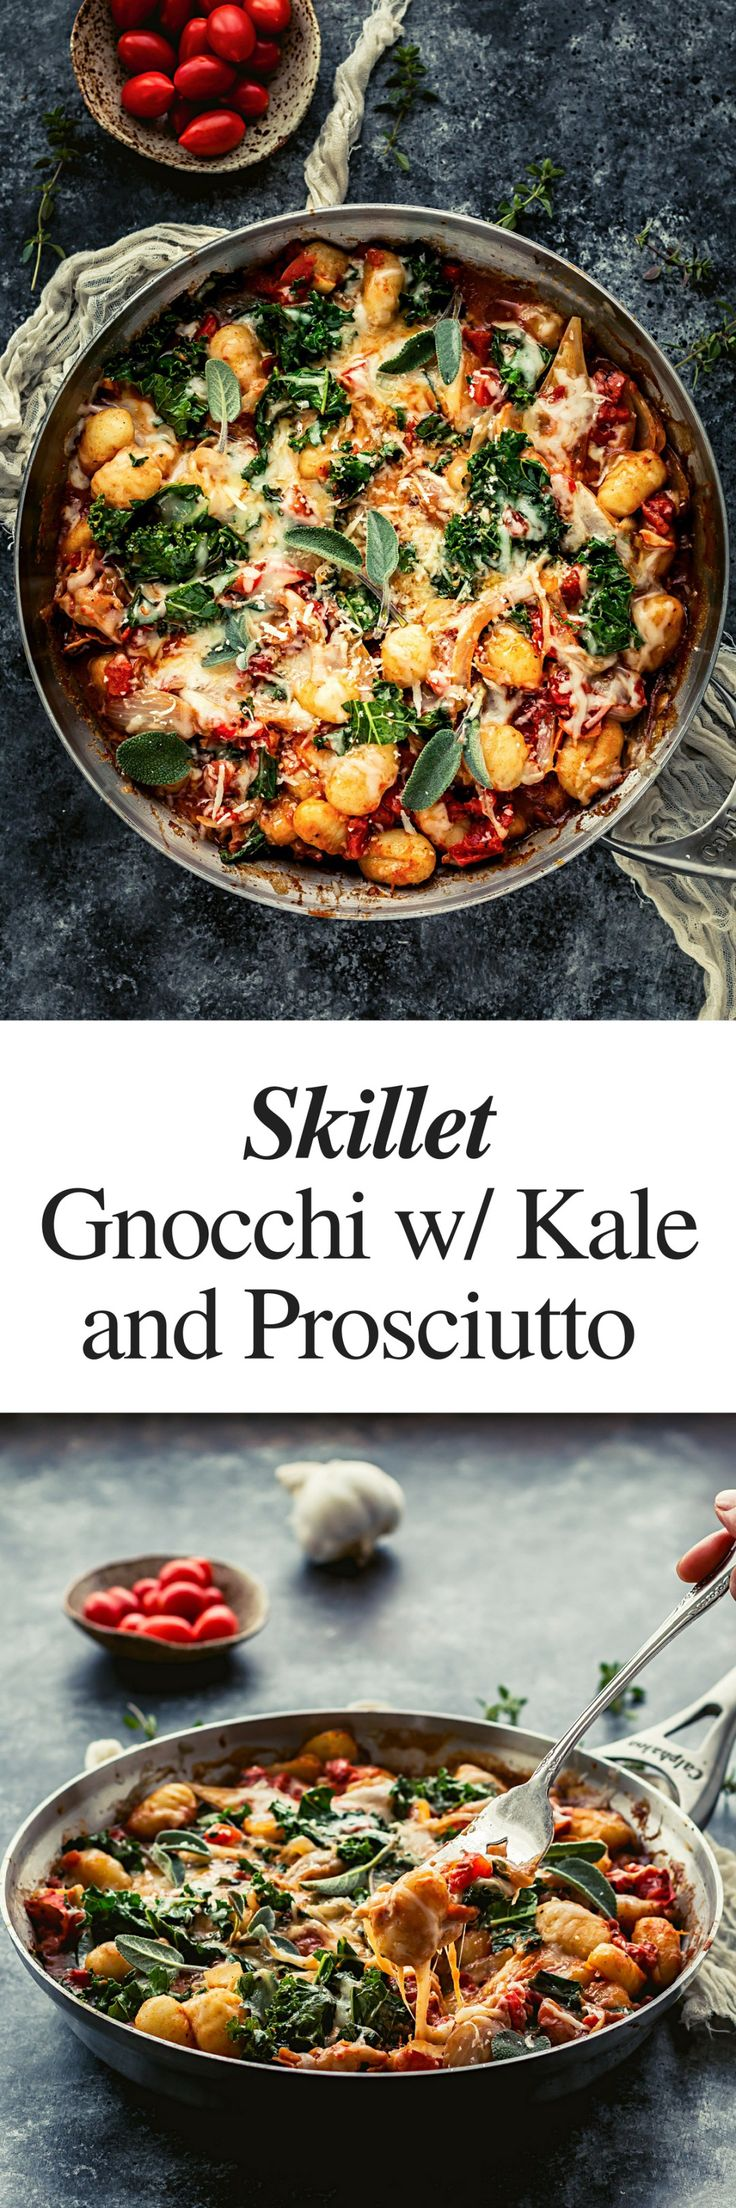 skillet potato gnocchi recipe with prosciutto and kale